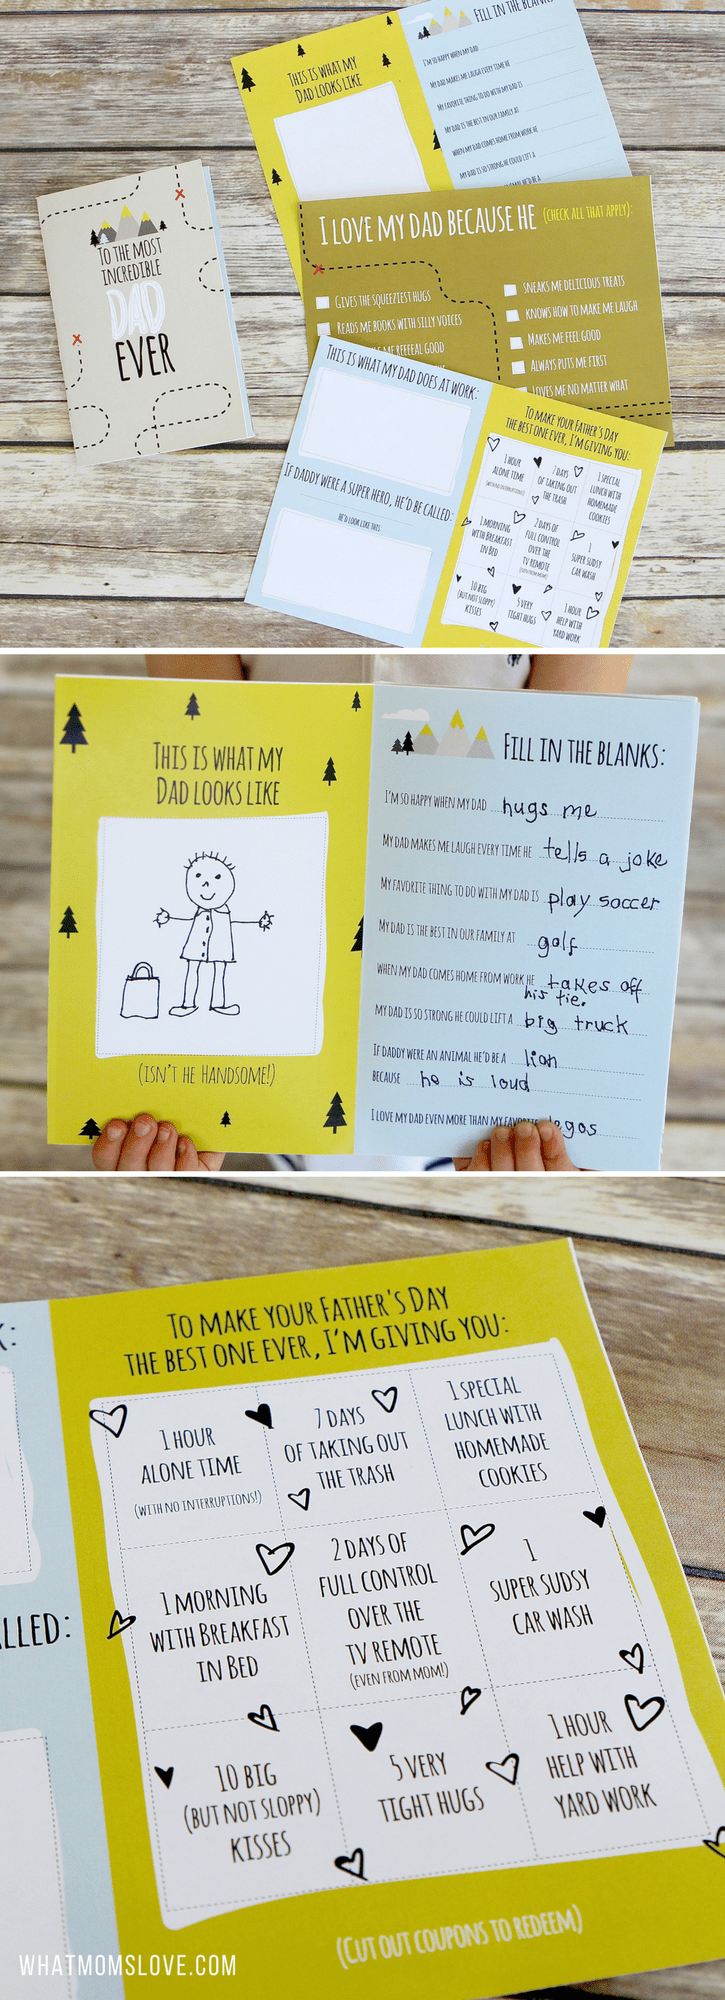 Free Printable Fathers Day Card | All About Dad or Grandpa Book for kids to make - includes fun questionnaire, coupons for dad, and space to draw and color. The perfect DIY homemade card - super easy!